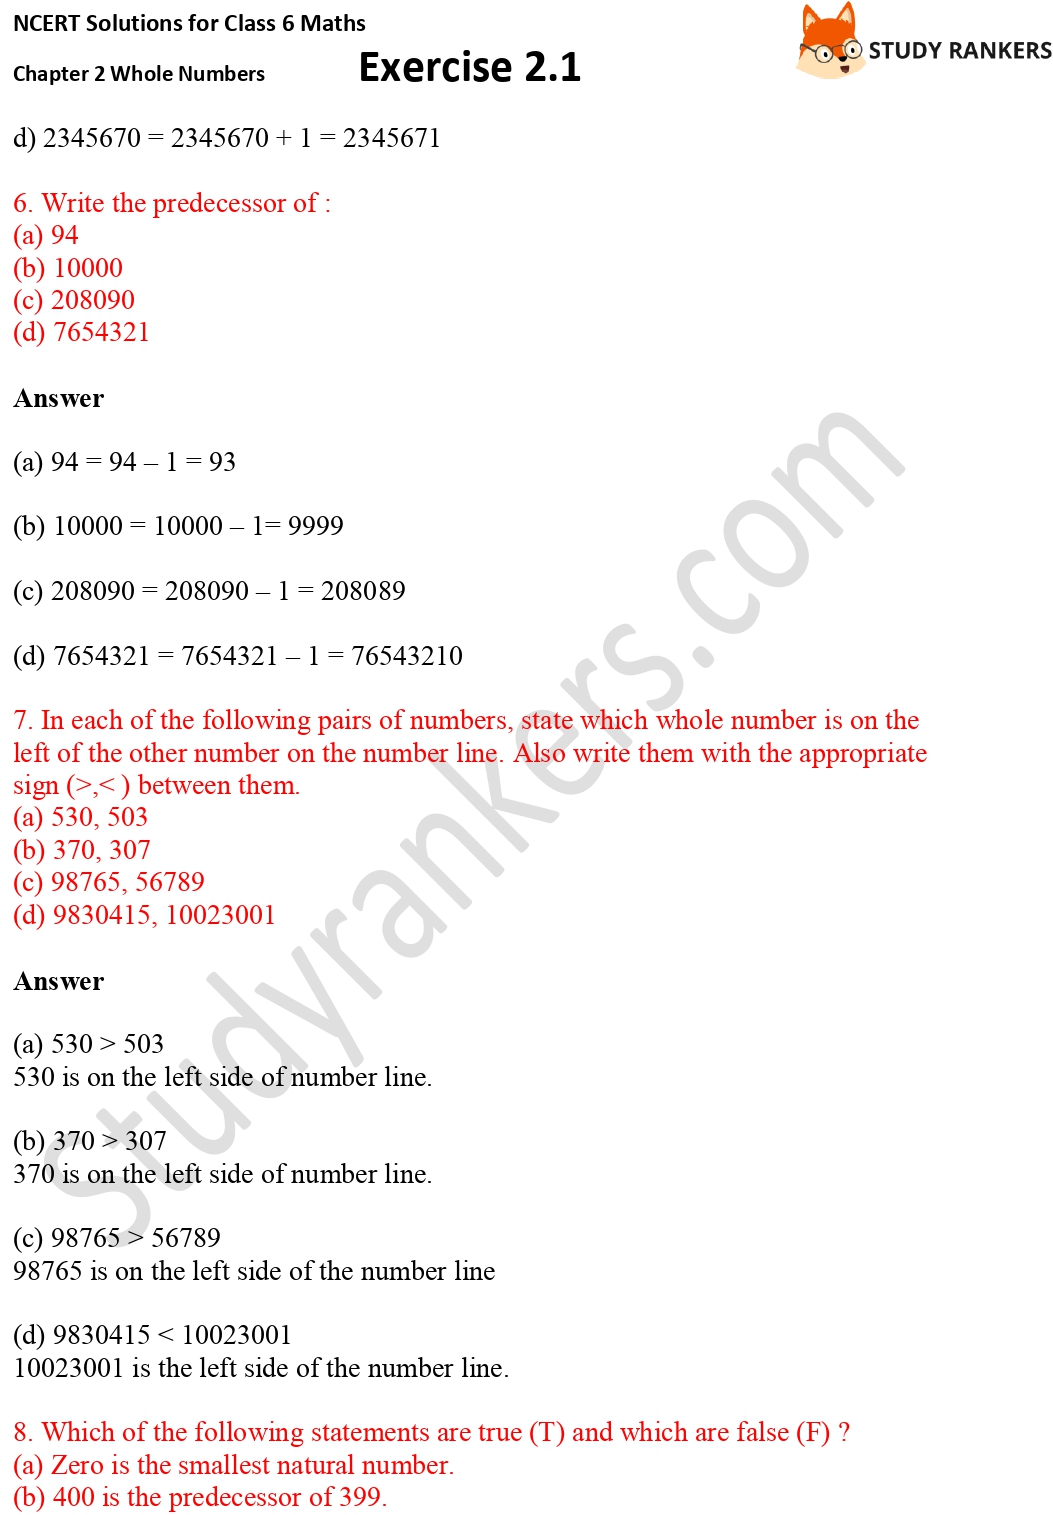 NCERT Solutions for Class 6 Maths Chapter 2 Whole Numbers Exercise 2.1 Part 2